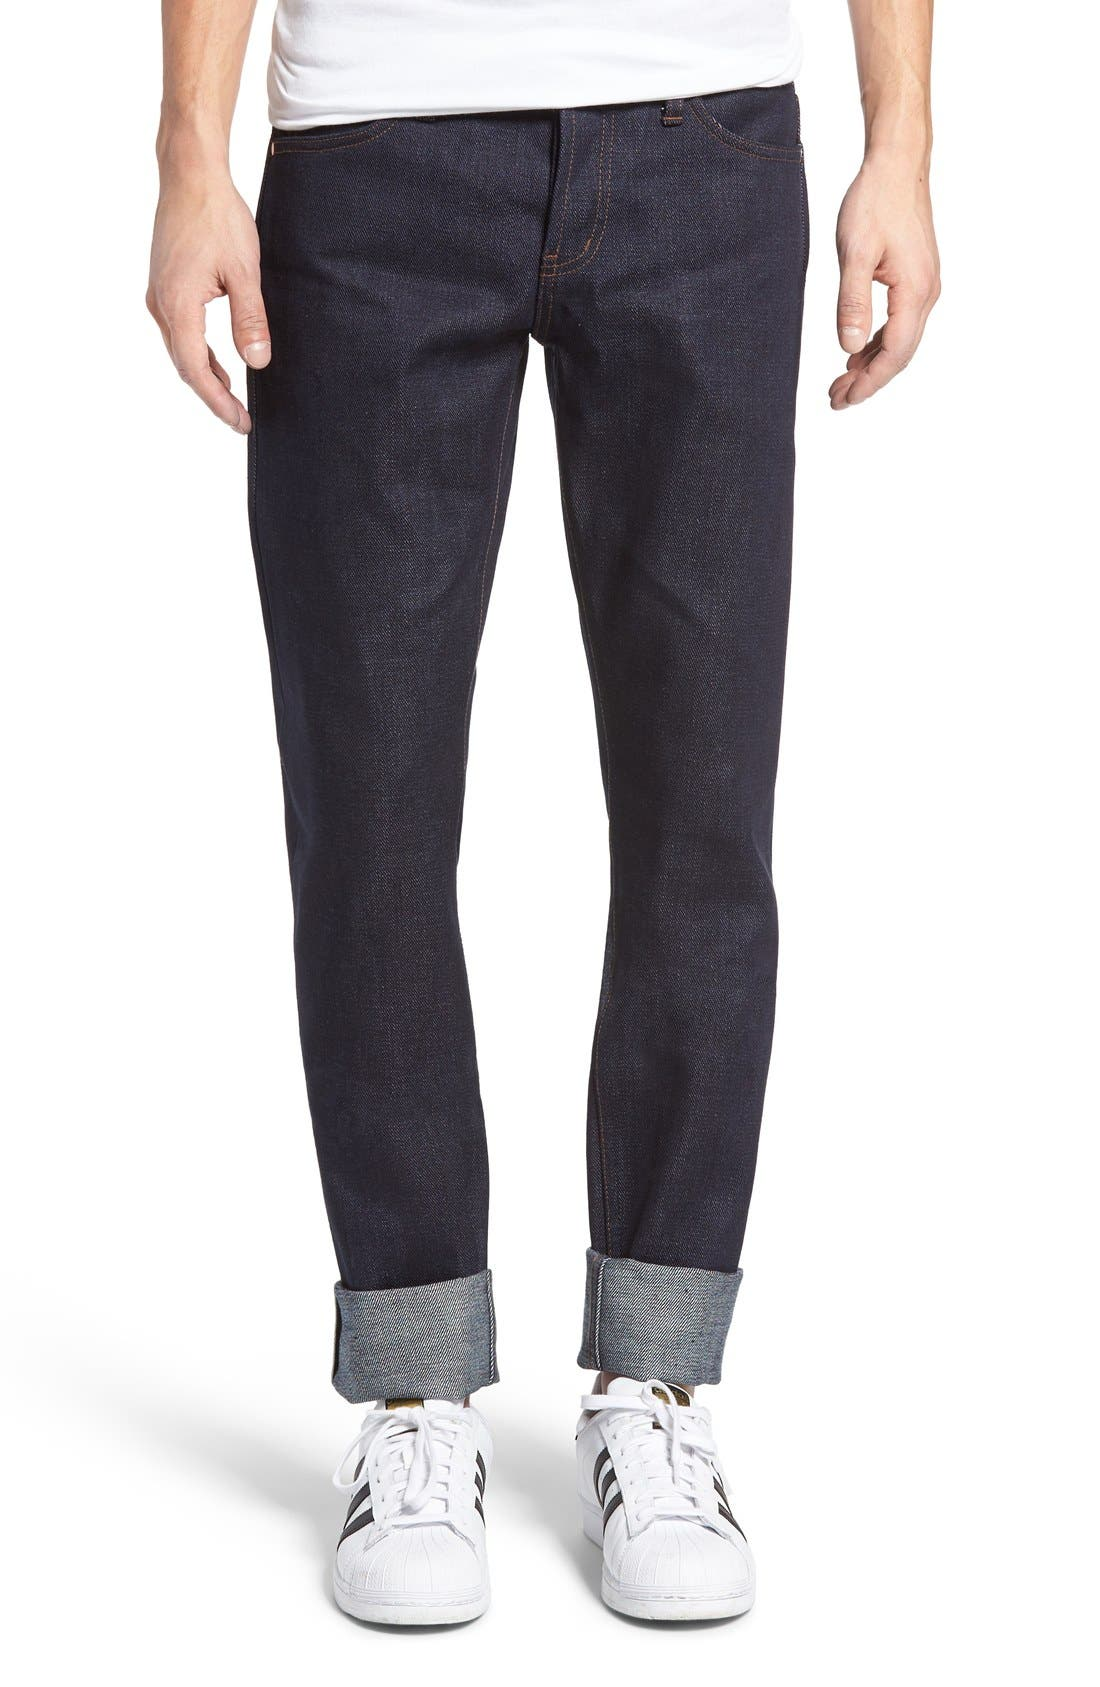 The Unbranded Brand UB121 Selvedge Skinny Fit Jeans